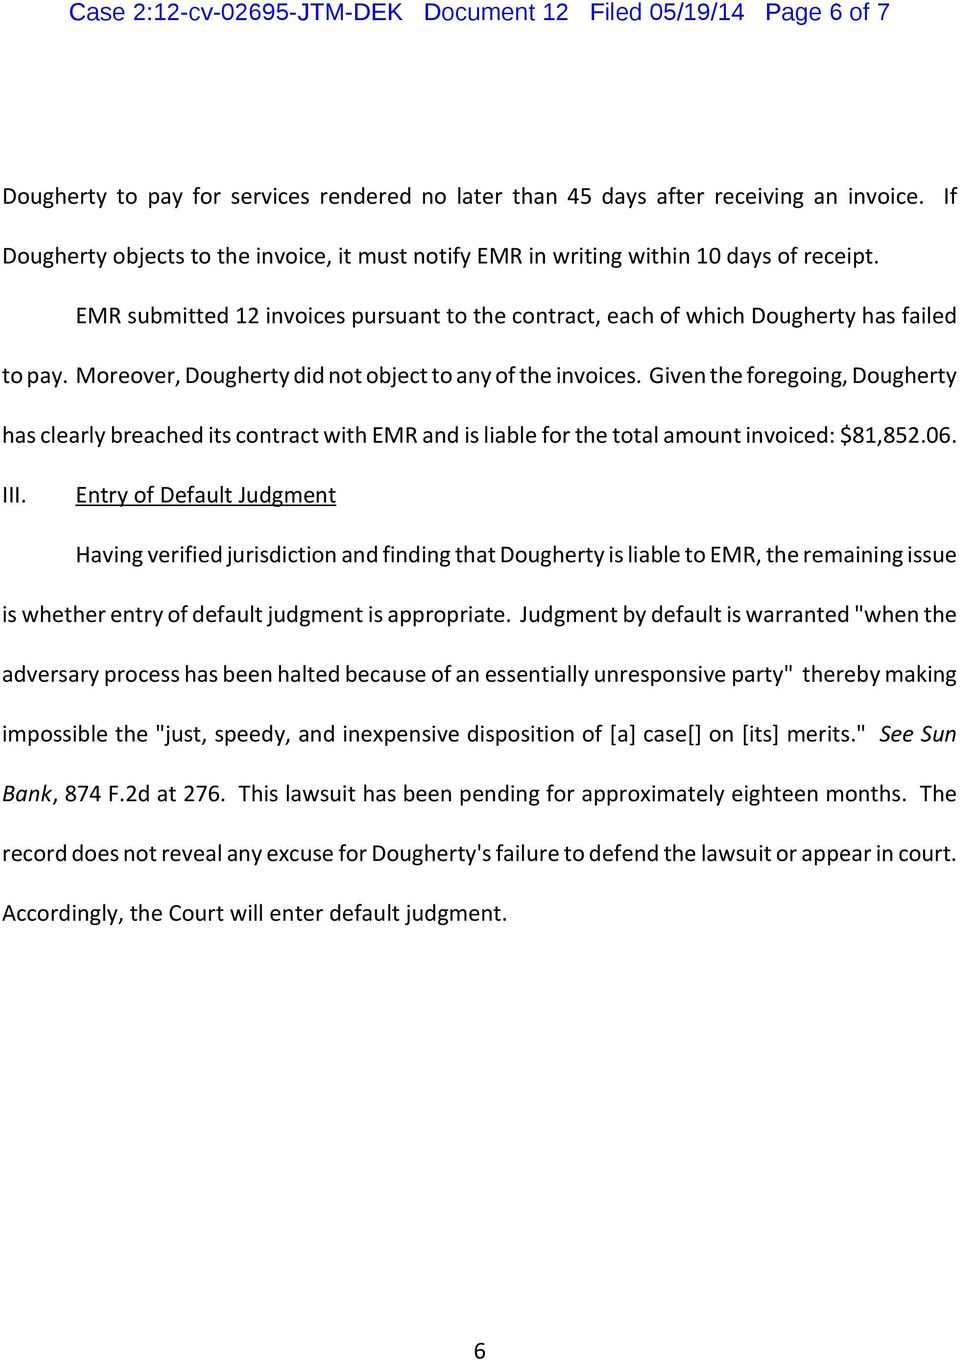 Moreover, Dougherty did not object to any of the invoices. Given the foregoing, Dougherty has clearly breached its contract with EMR and is liable for the total amount invoiced: $81,852.06. III.